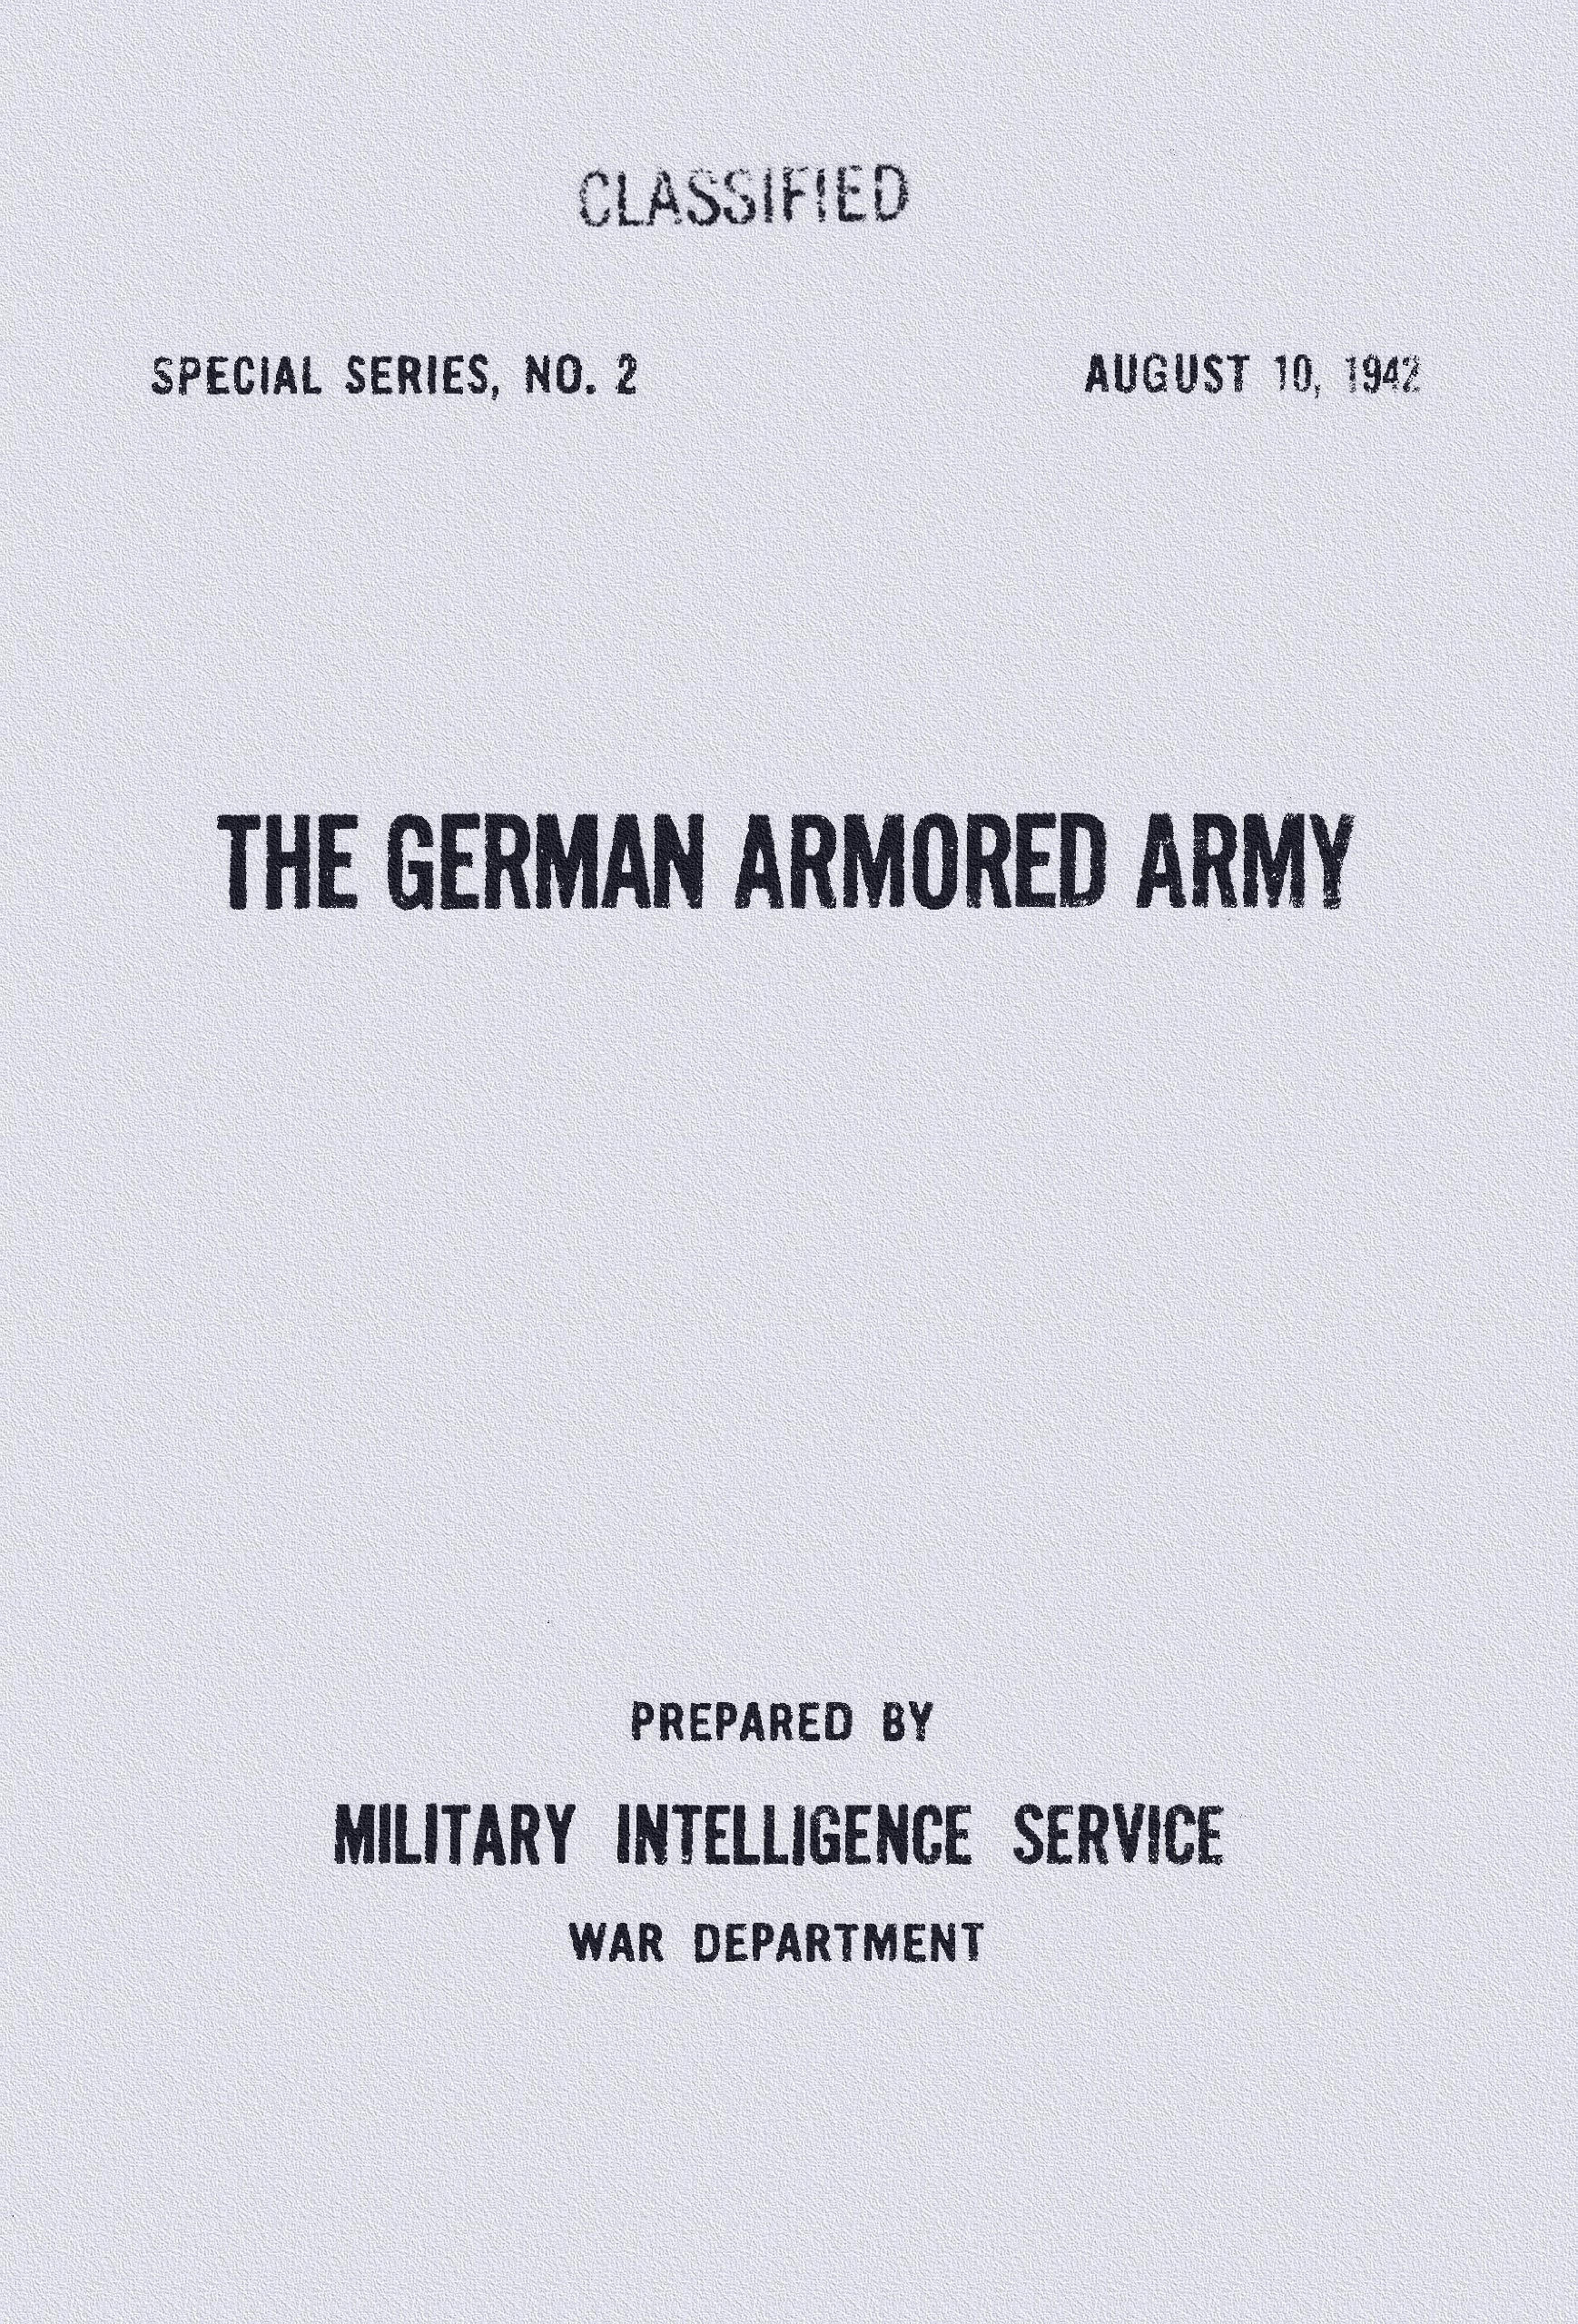 Read Online The German Armored Army - US Army Combined Arms Special Series No. 2. [Student Loose Leaf Facsimile Edition. Re-Imaged from August 10, 1942 Original for Greater Clarity. 2014] PDF